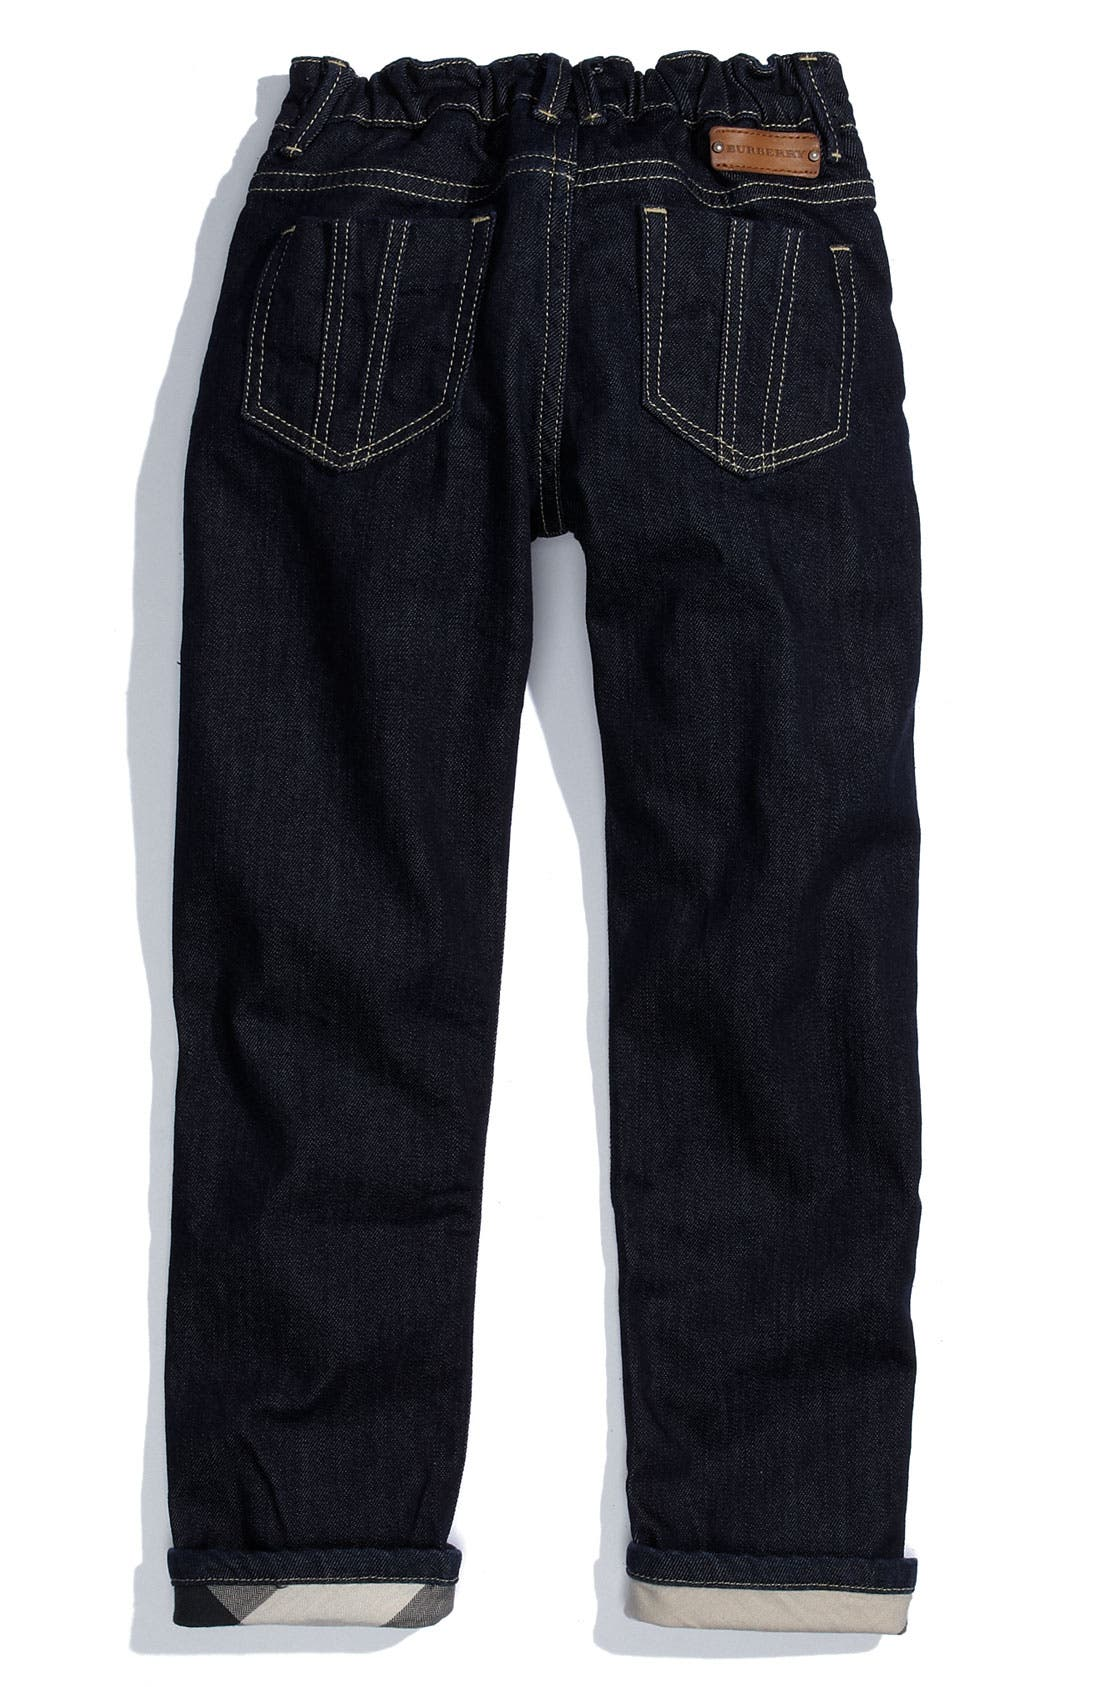 Main Image - Burberry Cuff Jeans (Little Girls)